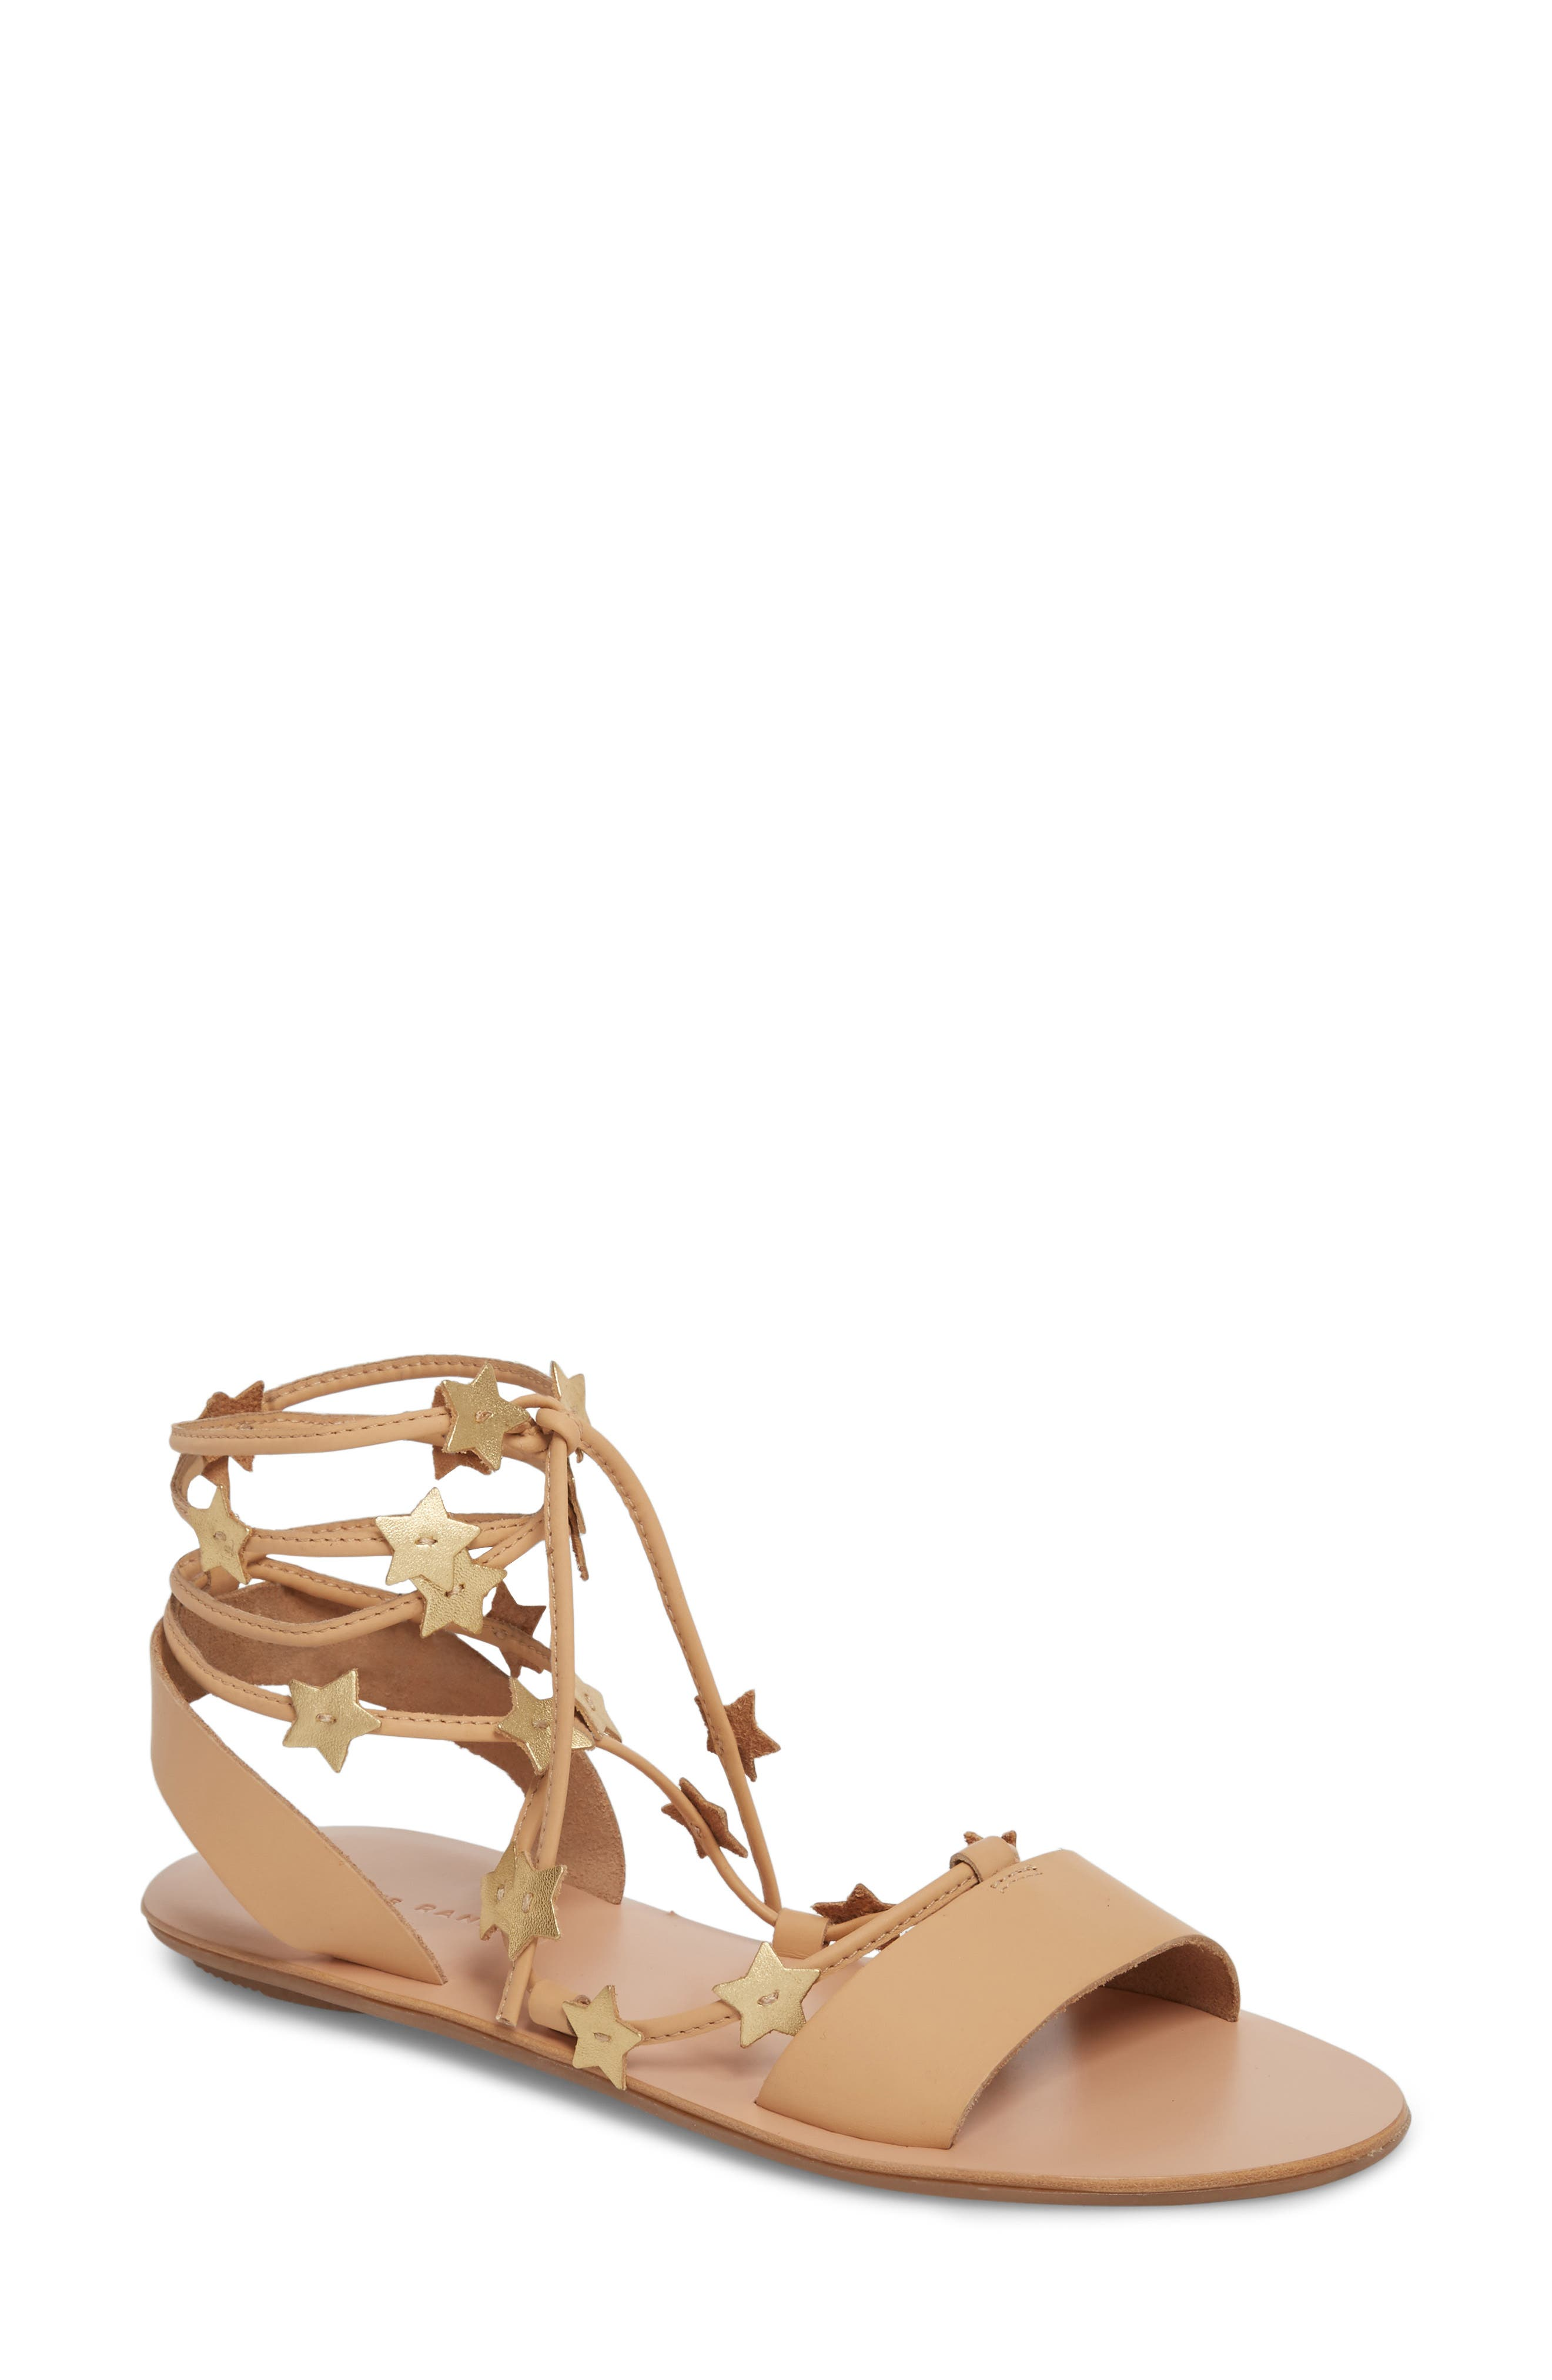 Starla Ankle Wrap Sandal,                             Main thumbnail 1, color,                             WHEAT